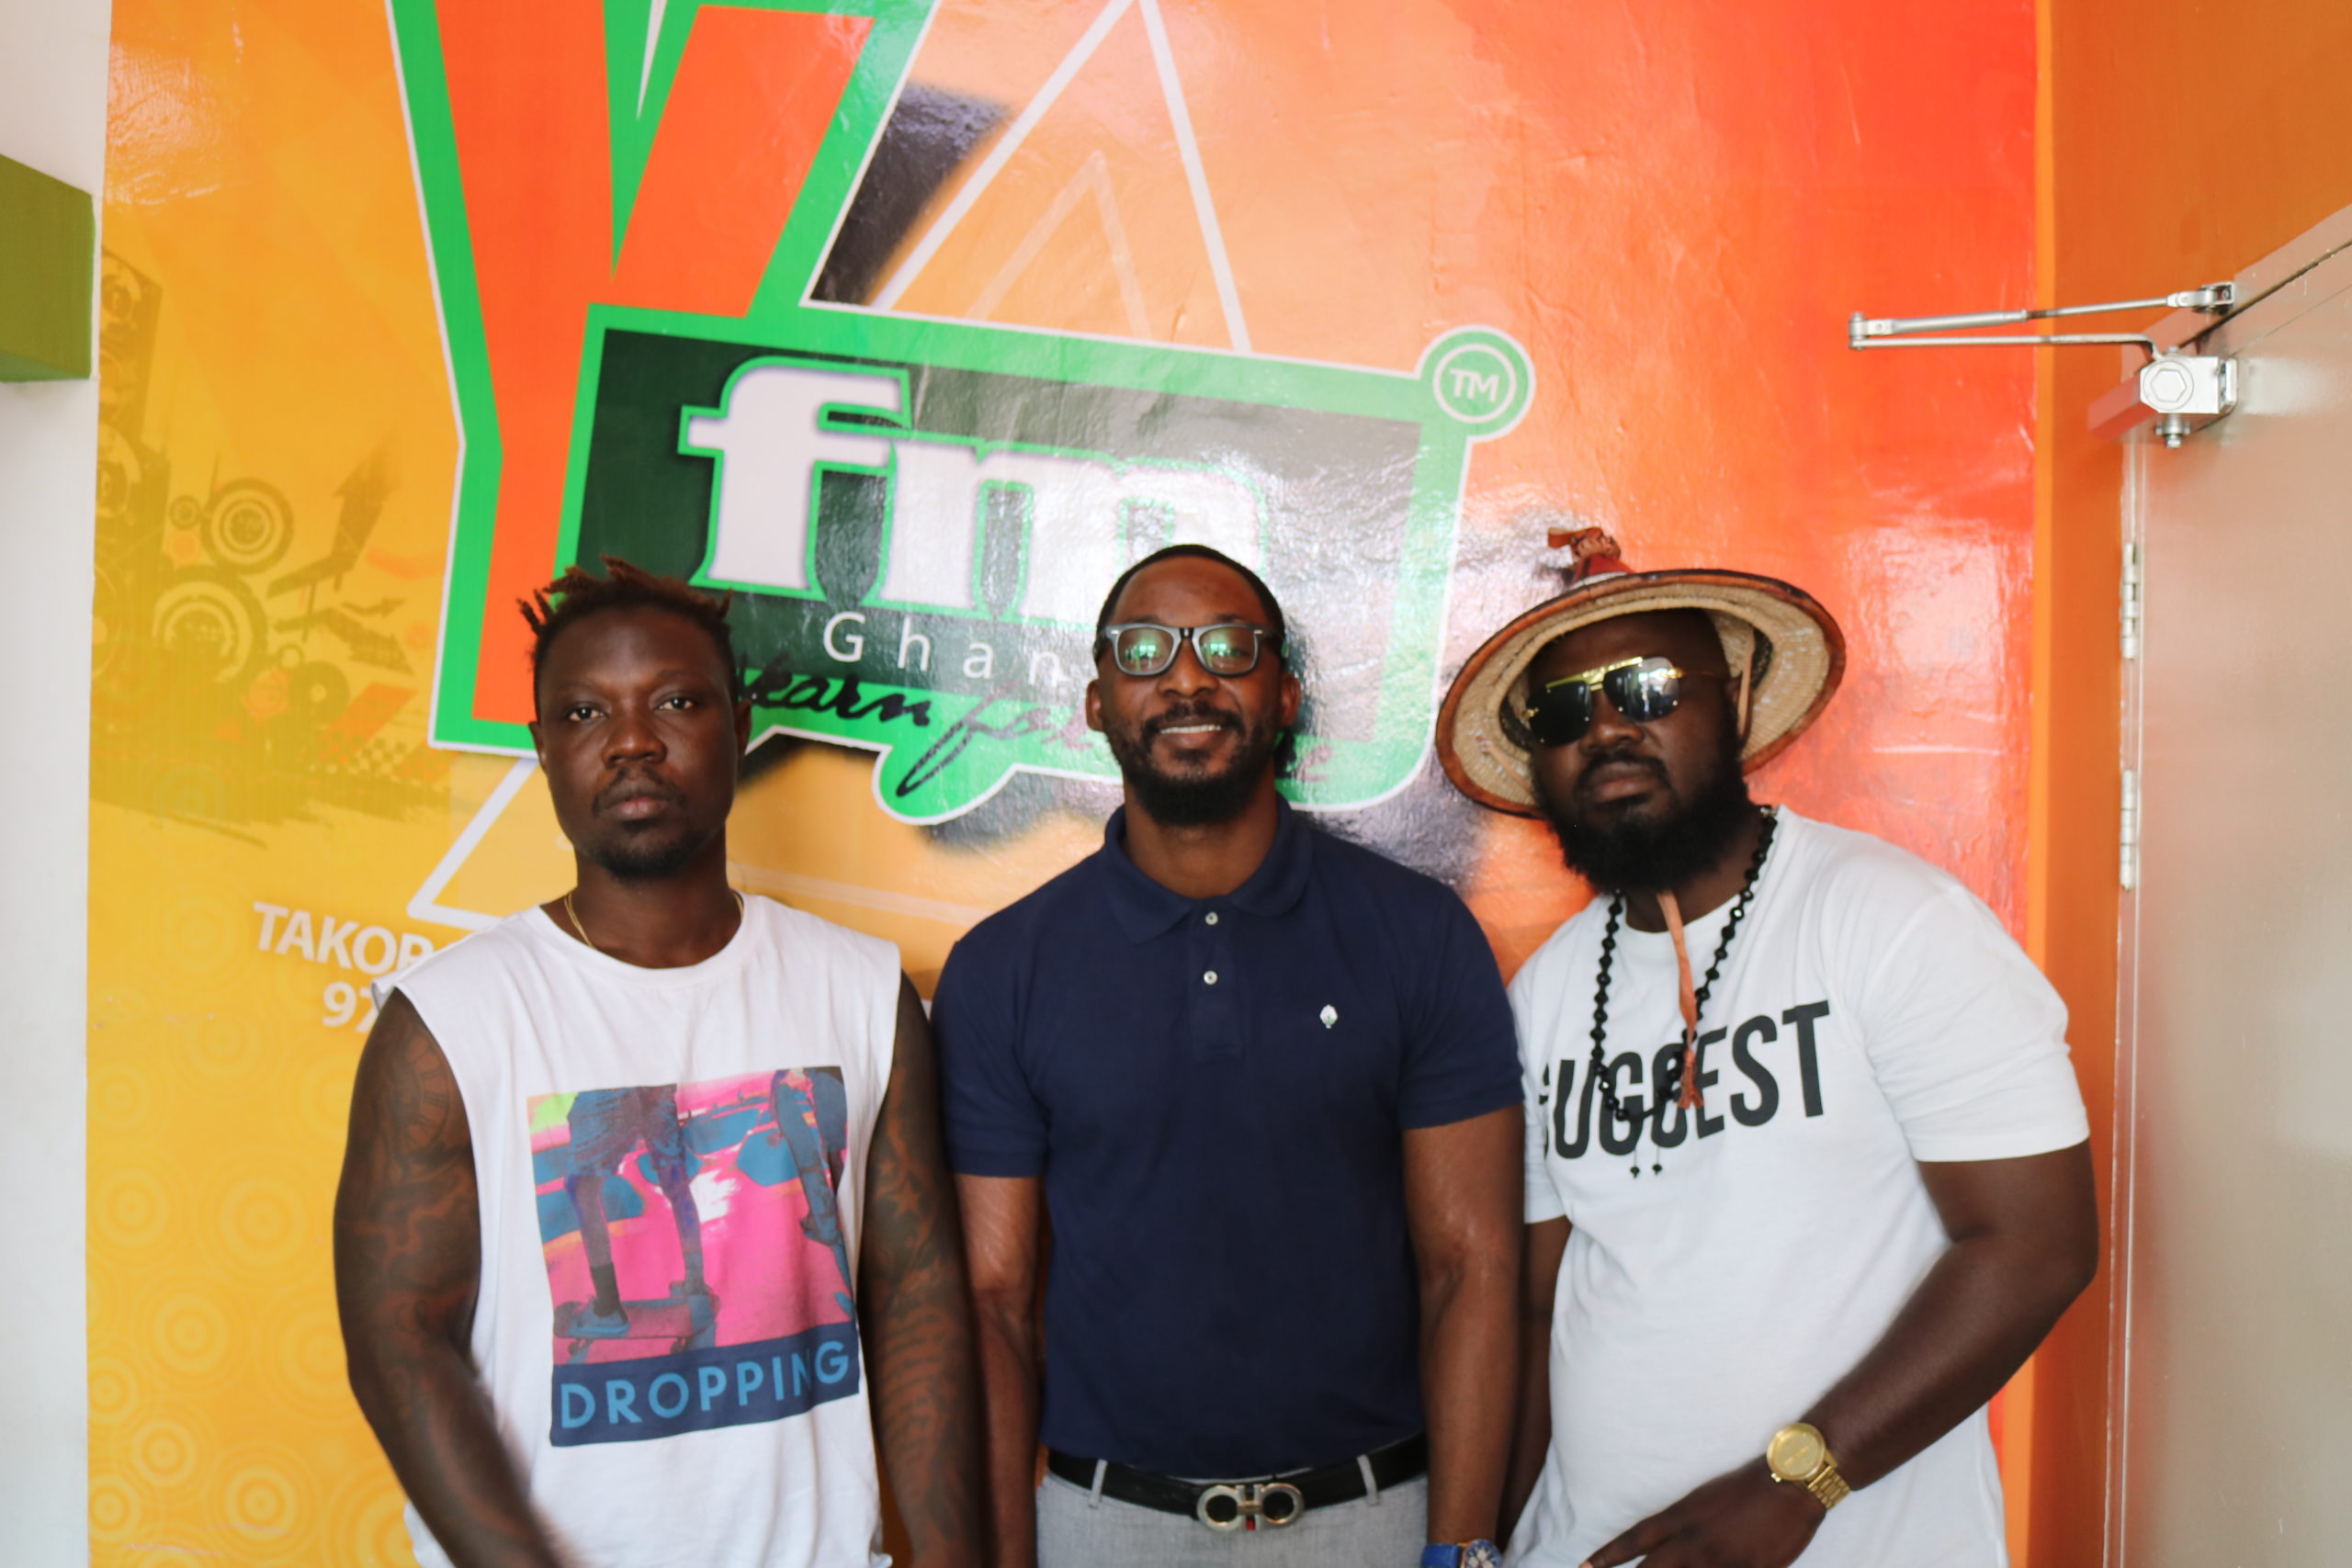 Ghanaian Musicians Are Scared Of Change - VVIP